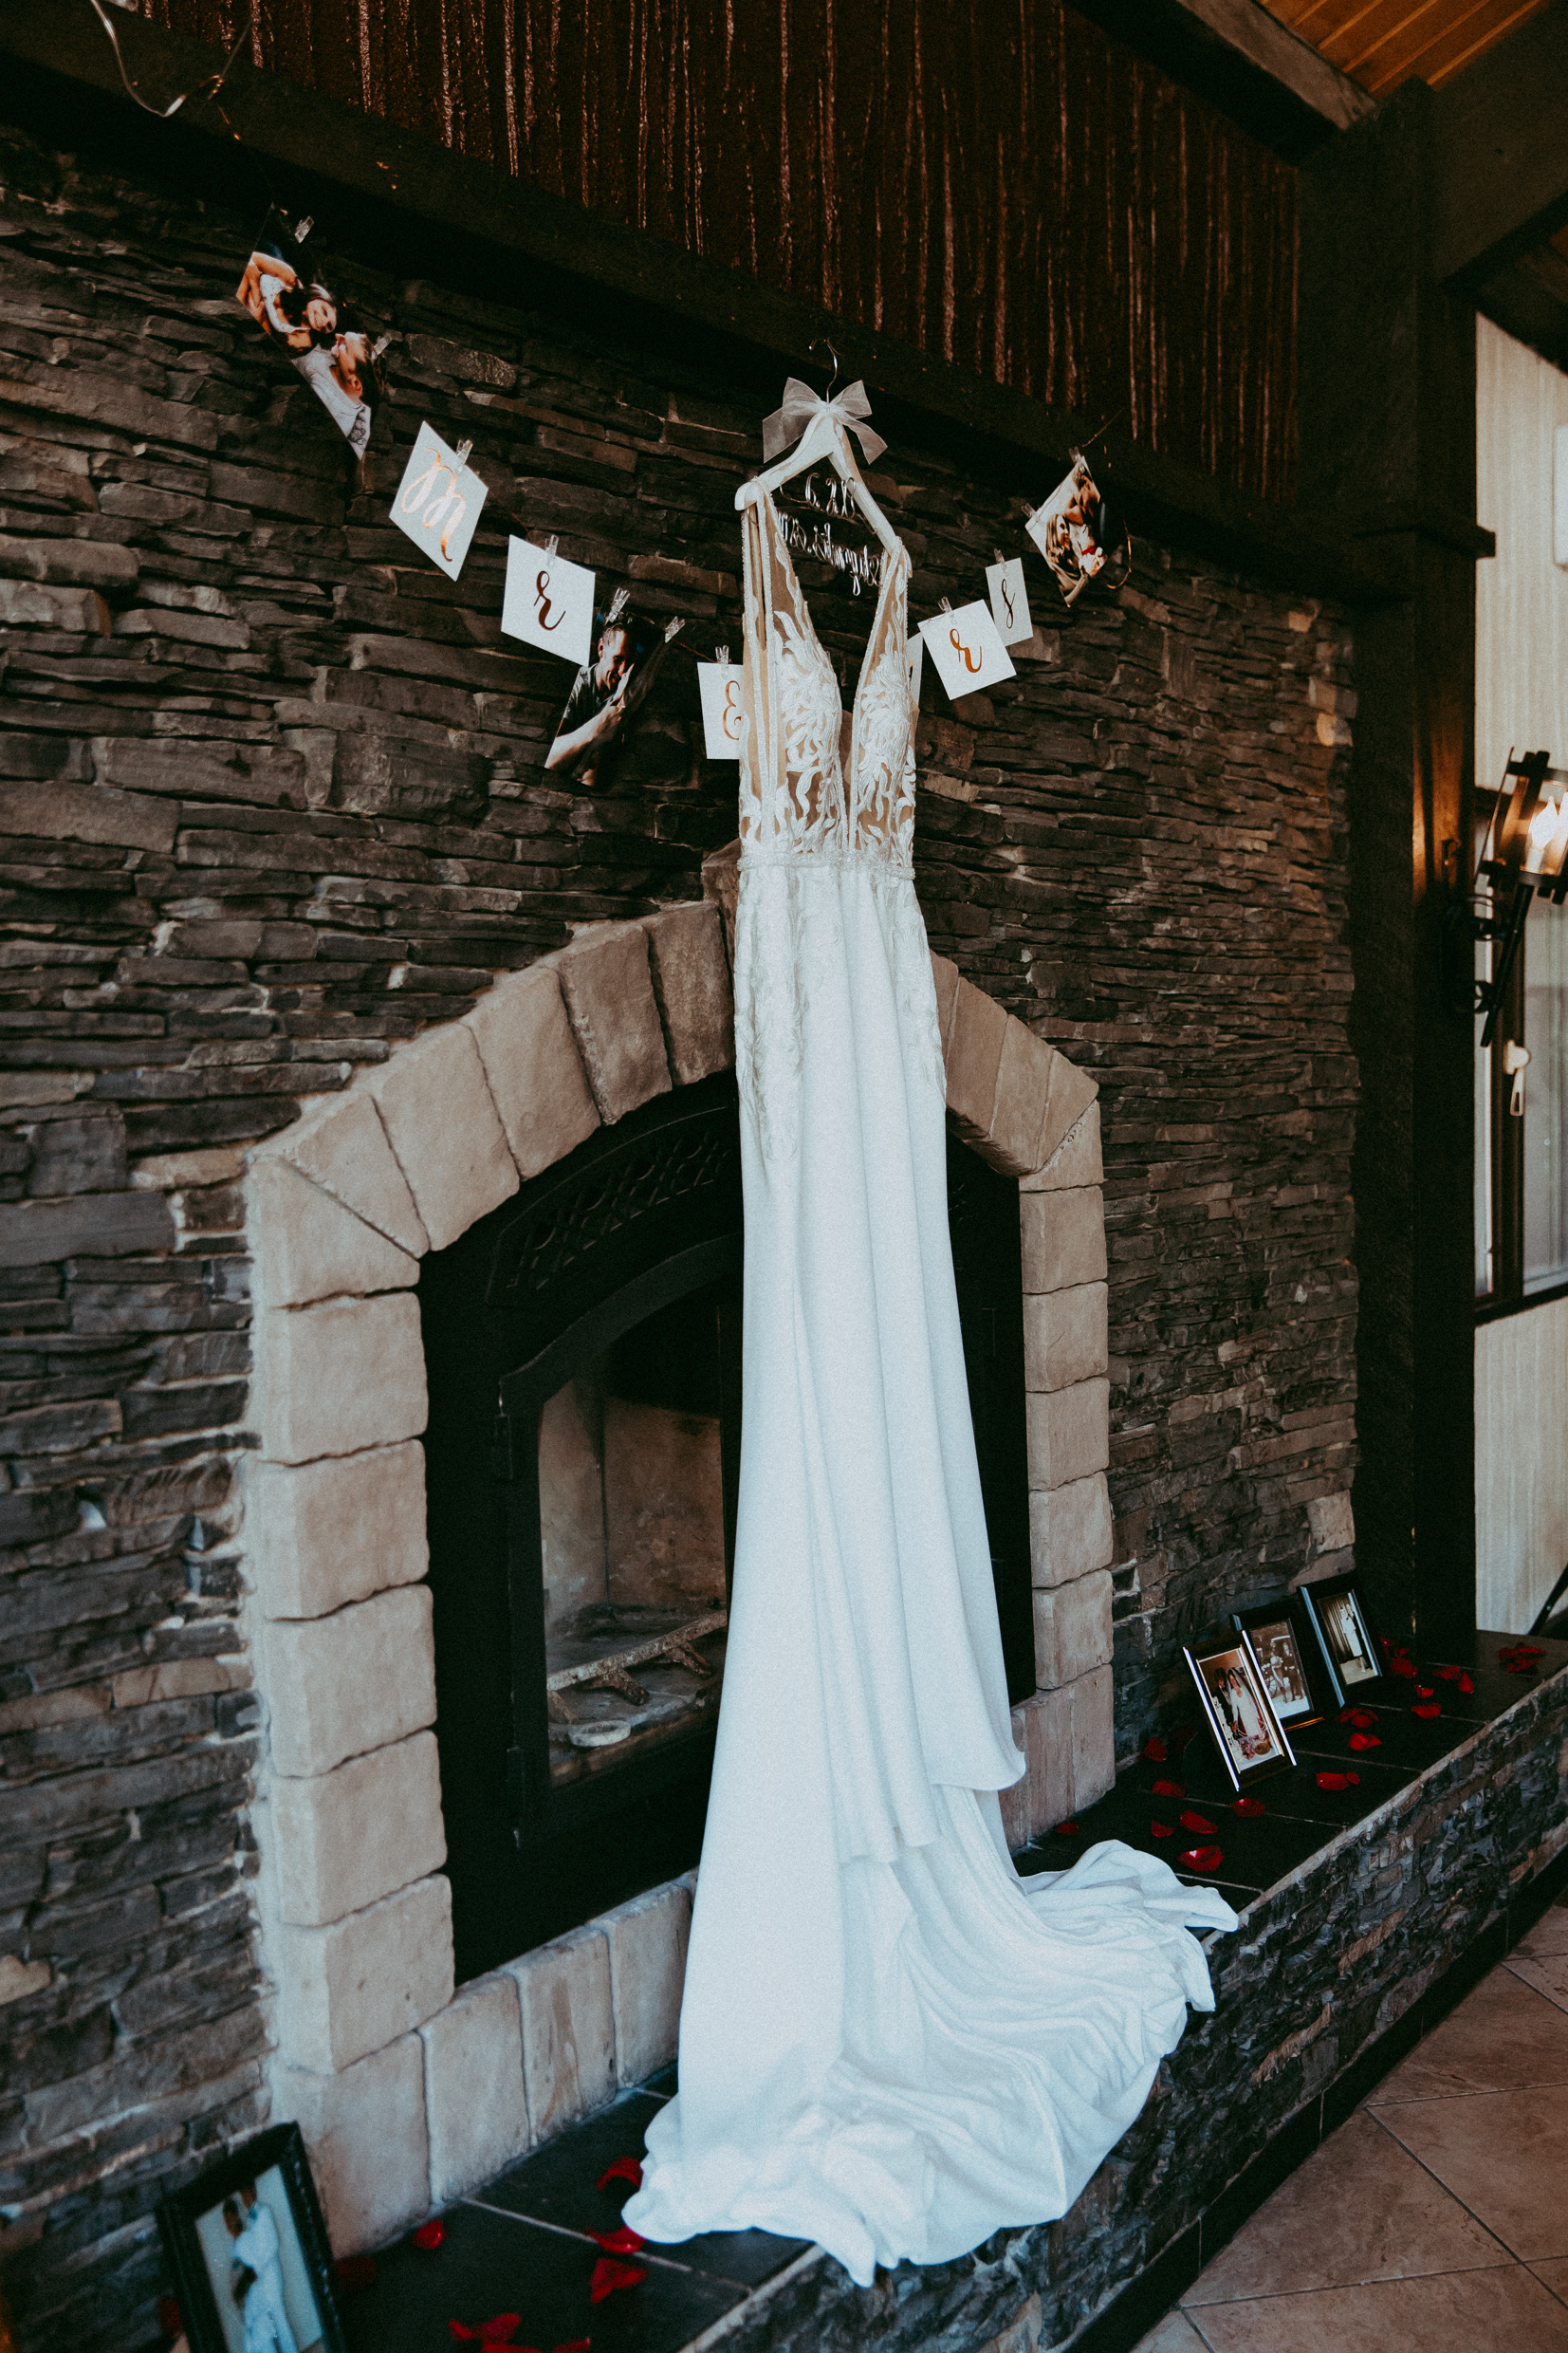 canyon ski resort wedding, canyon ski wedding, canyon ski hill, red deer wedding photographer, calgary wedding venues, red deer wedding venues